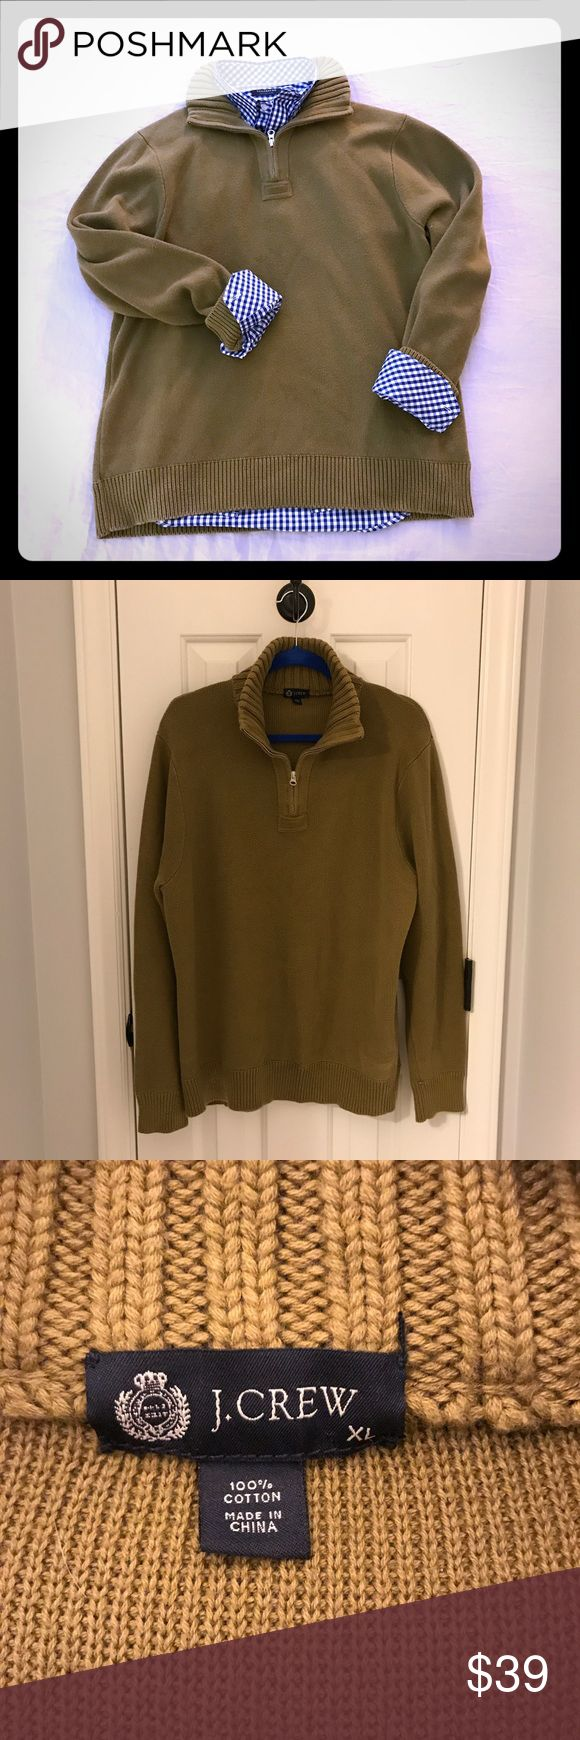 J.Crew Men's Sweater A staple for your closet. Men's half zip sweater. Perfect over button down shirts, great with jeans. 💯cotton. In great condition. J. Crew Sweaters